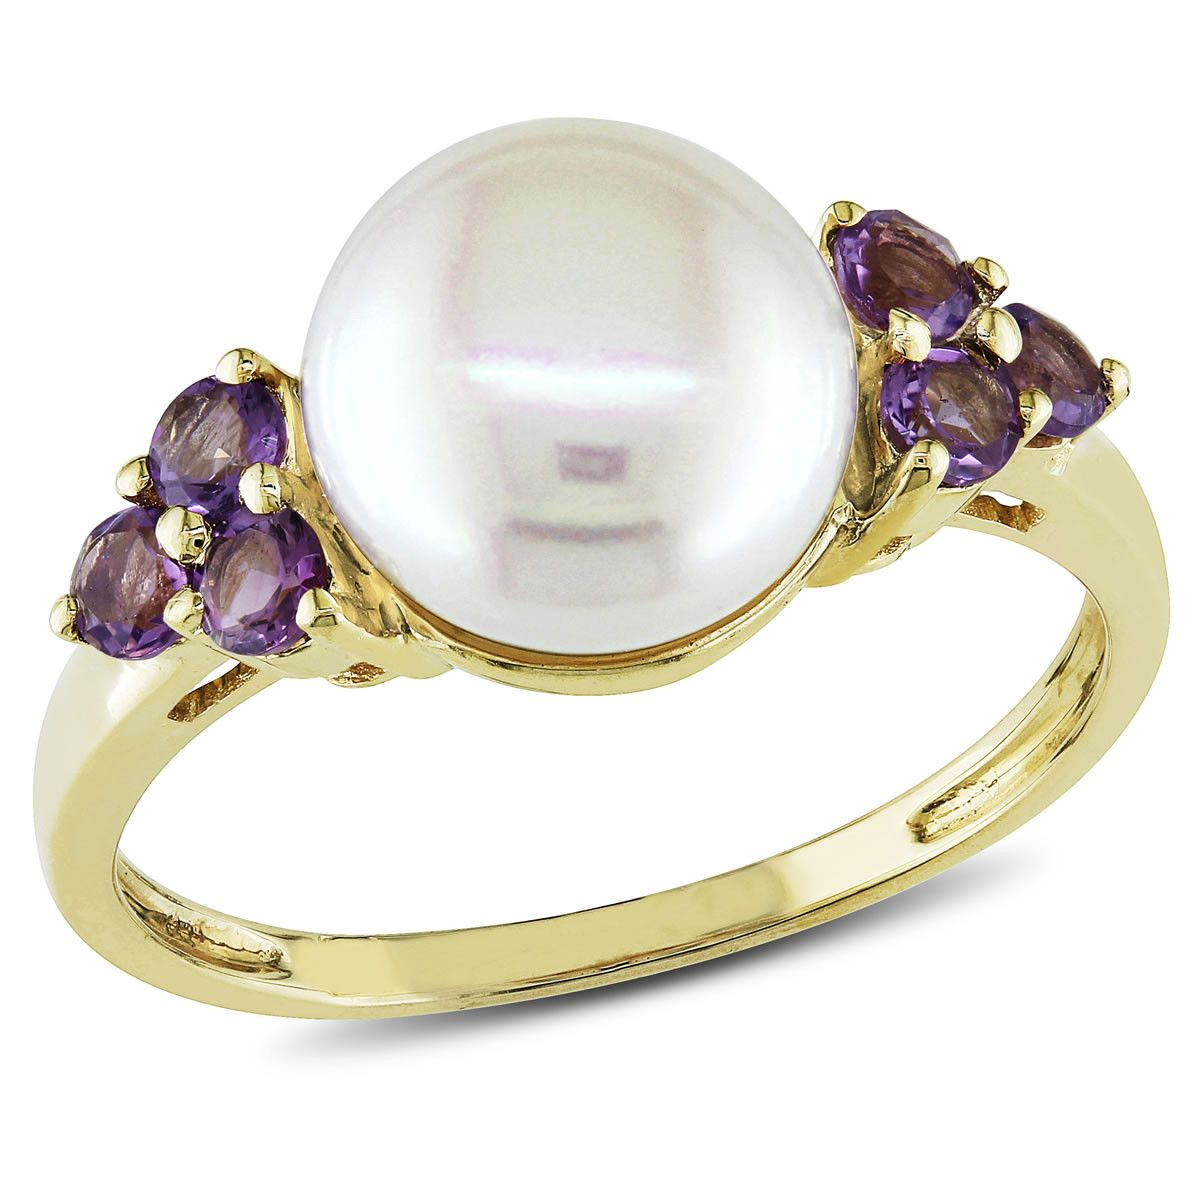 1/4ct TGW Amethyst and 8-8.5mm White Freshwater Cultured Pearl Fashion Ring in 10K Yellow Gold